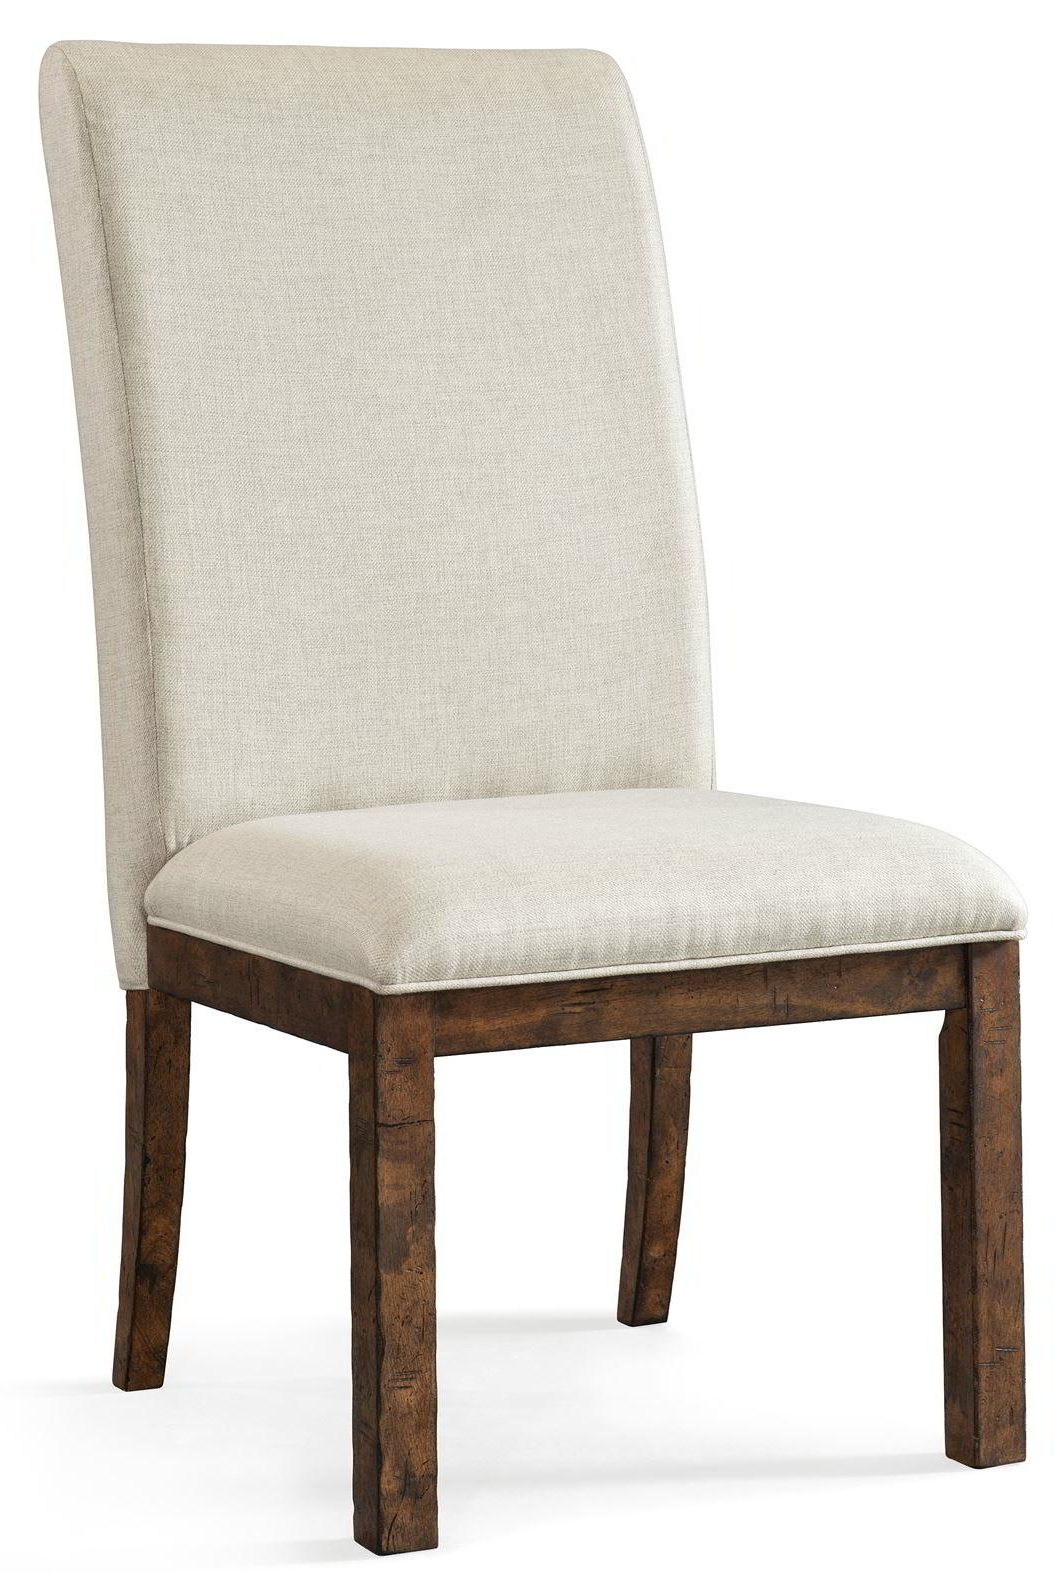 Gwen Upholstered Side Chair, Simple Elegance – Frontroom Furnishings Throughout Gwen Sofa Chairs (View 10 of 25)